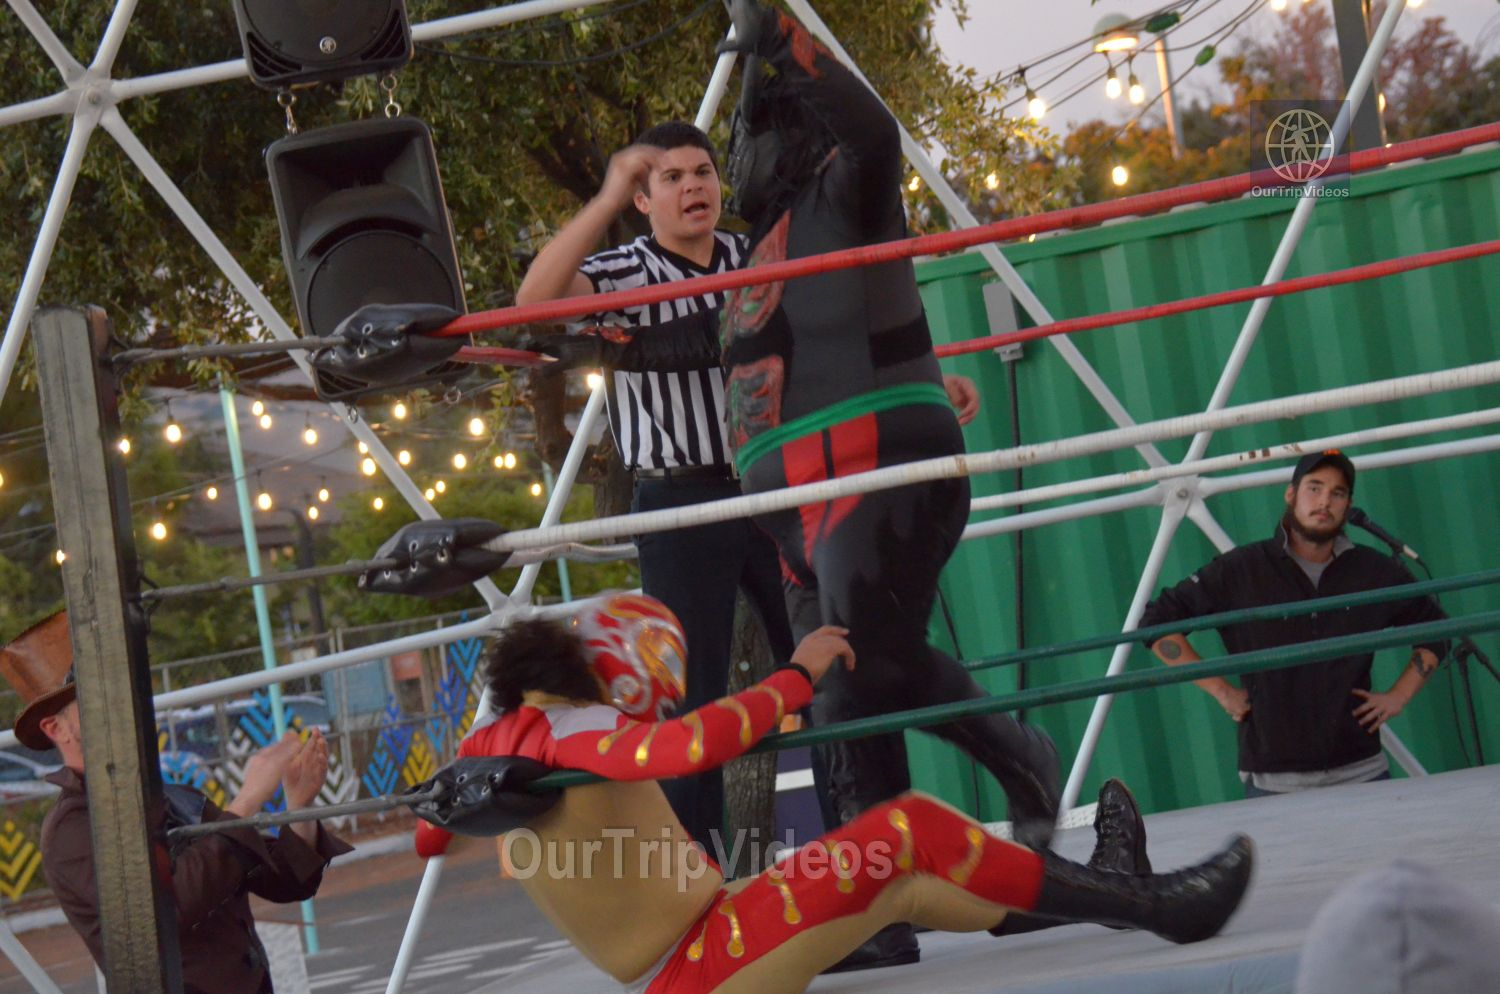 Throwdown at the Thunderdome (Luchador Wrestling), Fremont, CA, USA - Picture 14 of 25